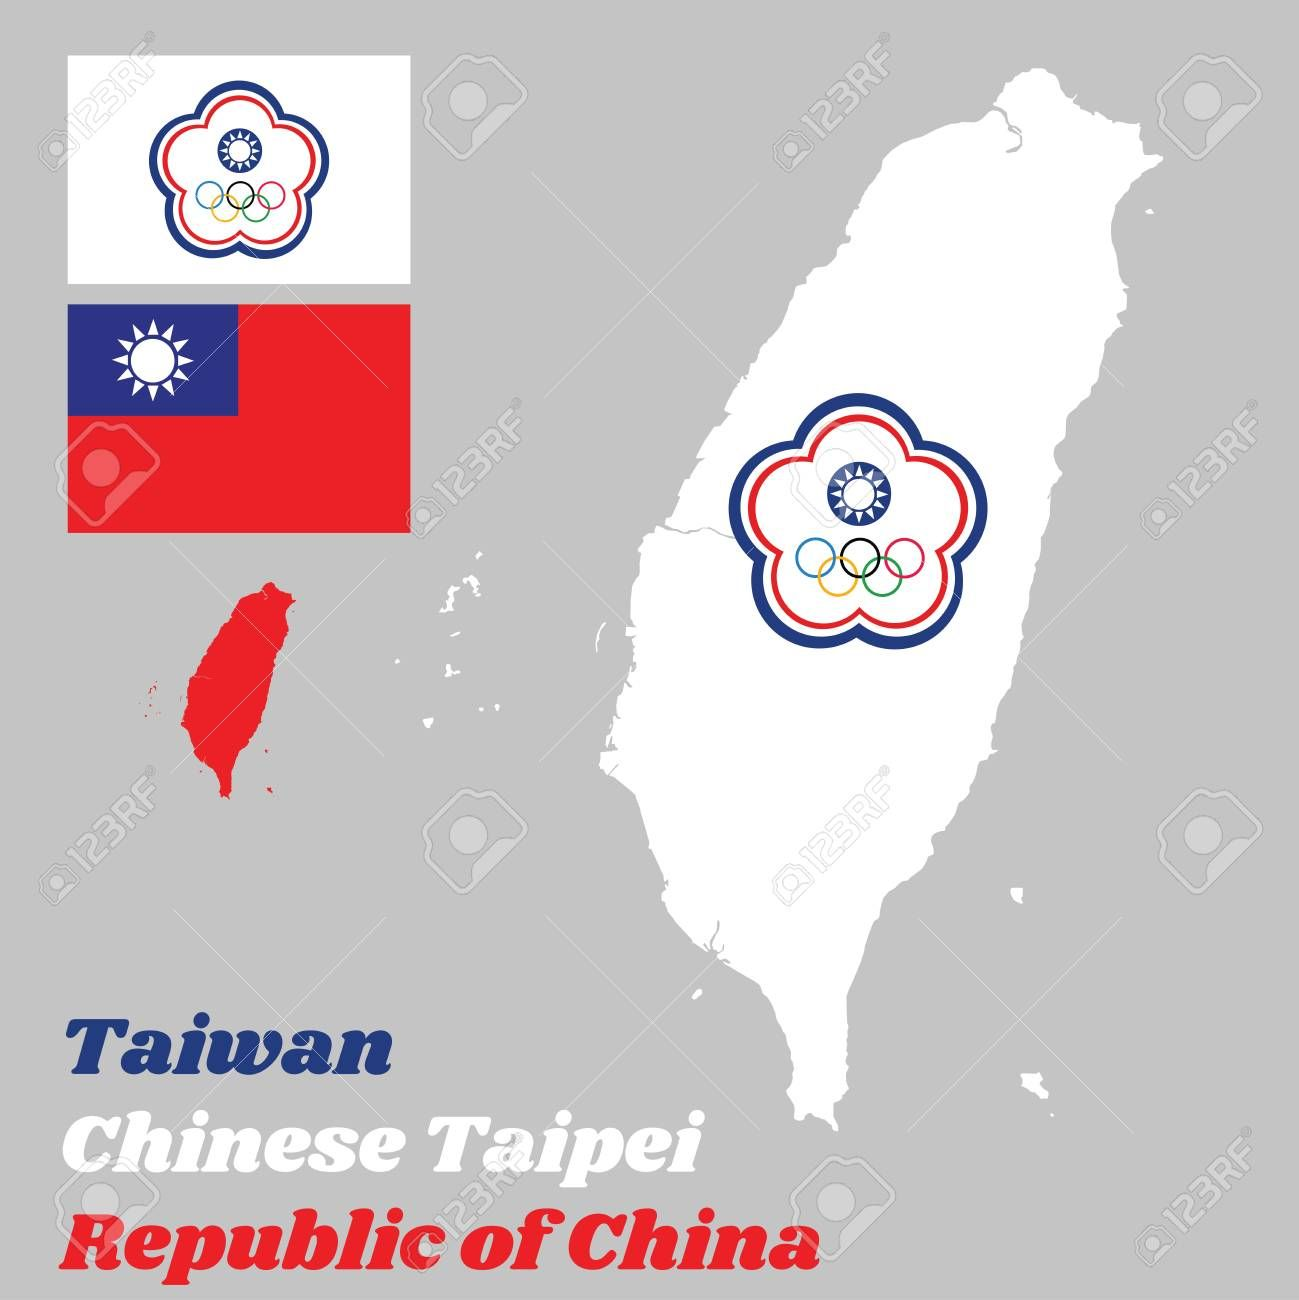 Map Outline Of Taiwan Or Chinese Taipei The Chinese Taipei Olympic Flag And Flag Of The Republic Of China With Text Republic Of China Sponsored Chinese